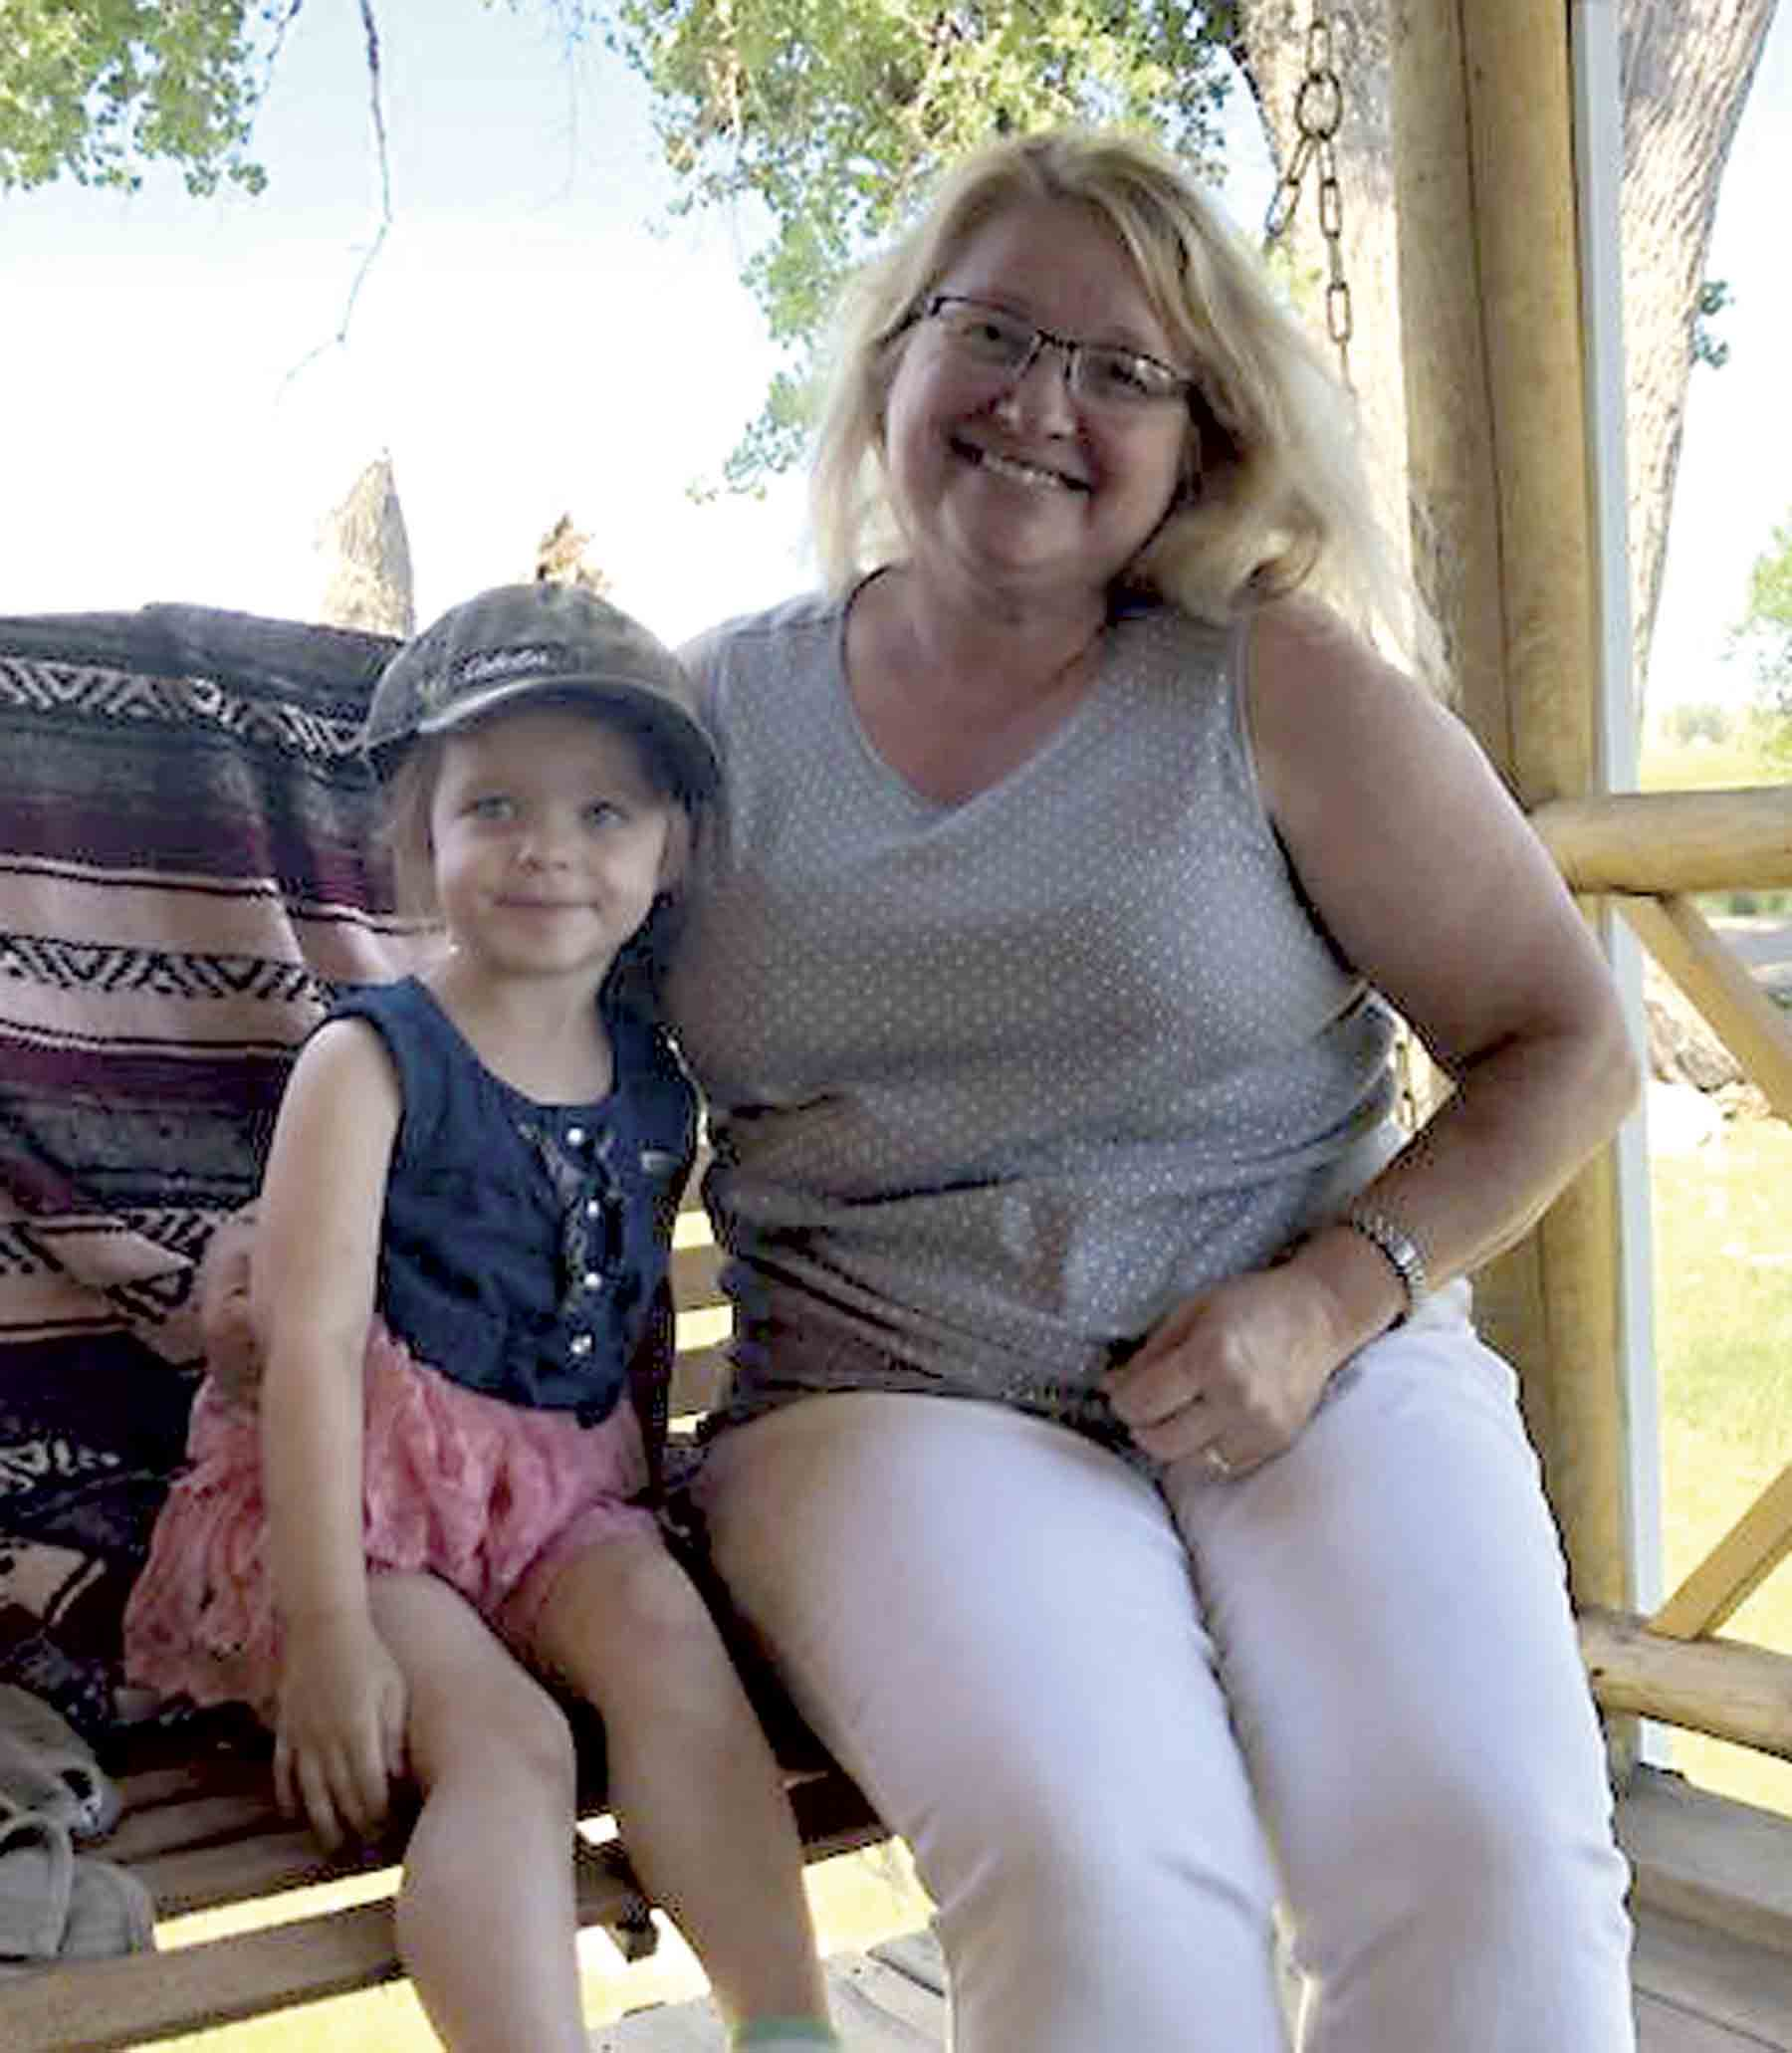 When Heidi Henriksen (right) and her granddaughter, three-year-old Lucy (left) were attacked by a dog at a relatives home, Heidi knew she was not only fighting for her life, but for Lucy's as well.  Heidi sustained multiple injuries in the attack, but thanks to her quick thinking...